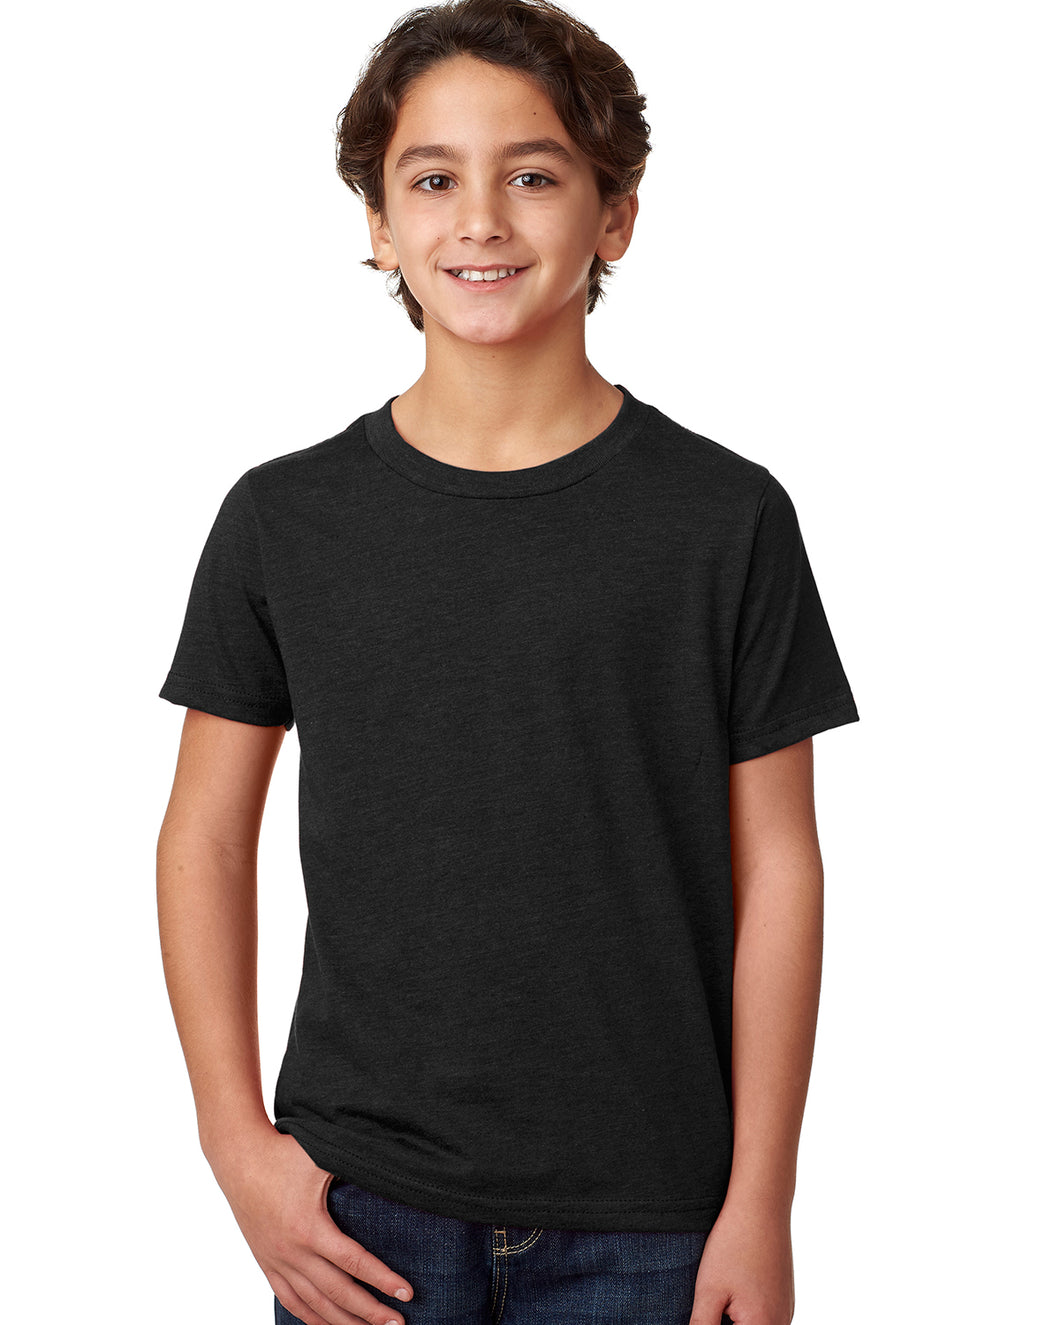 Boys Team Tshirt (free with $75 Purchase)